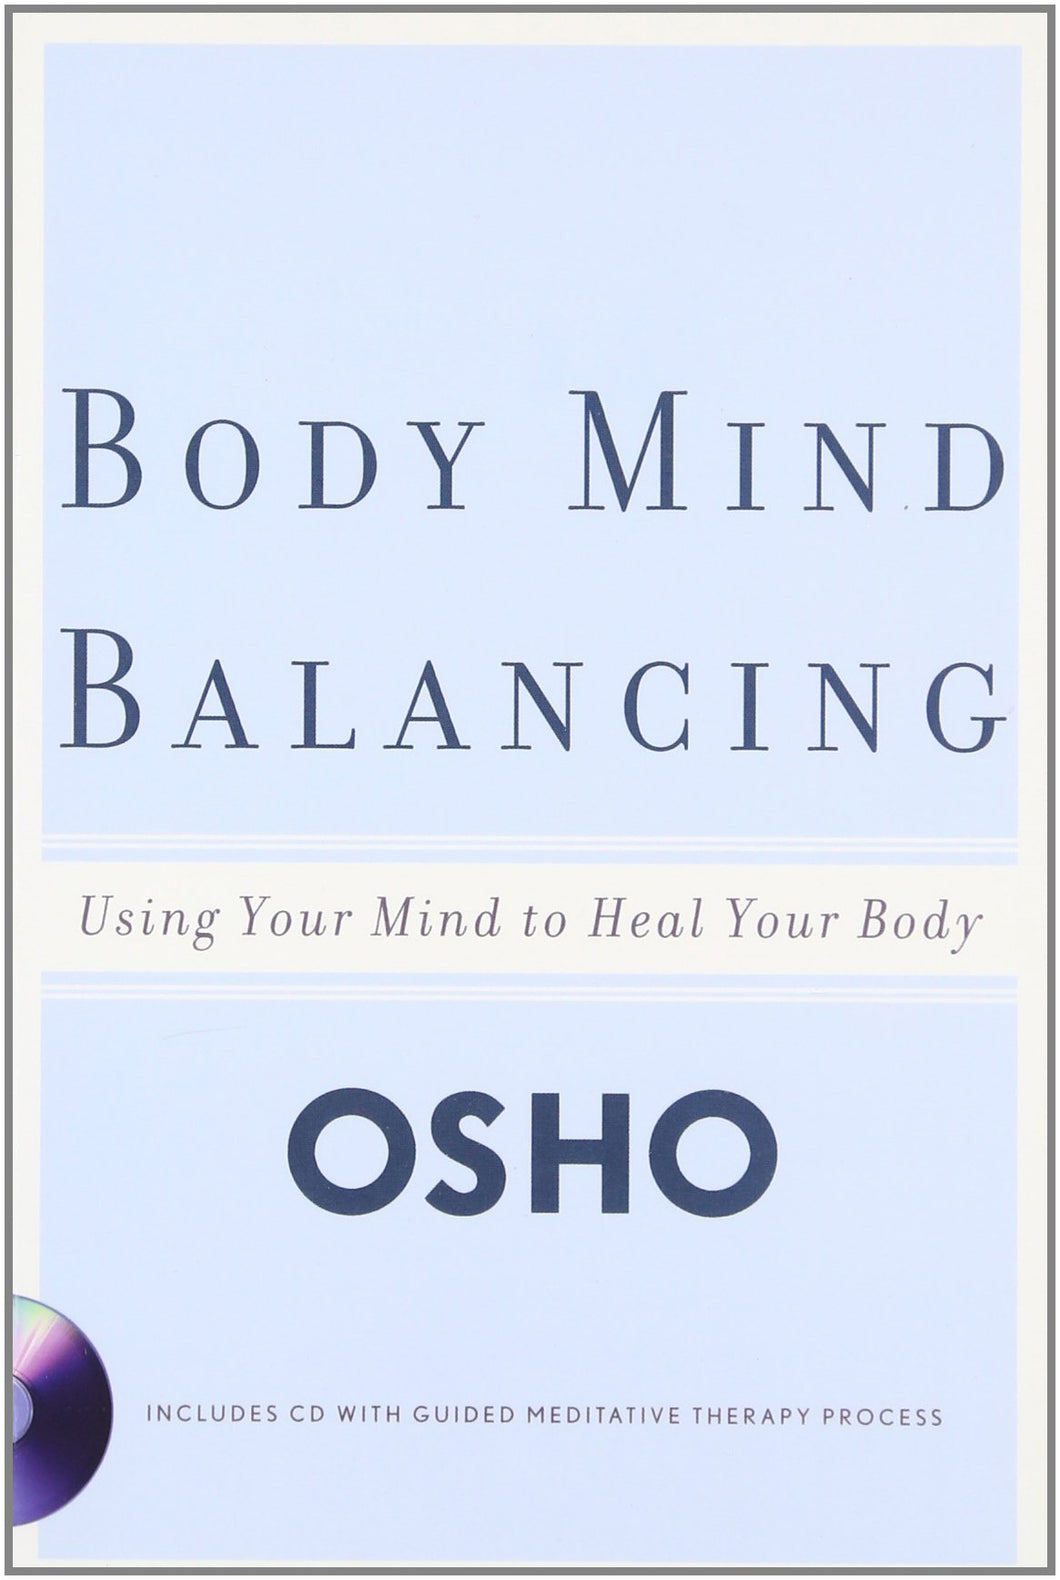 Body Mind Balancing: Using Your Mind to Heal Your Body